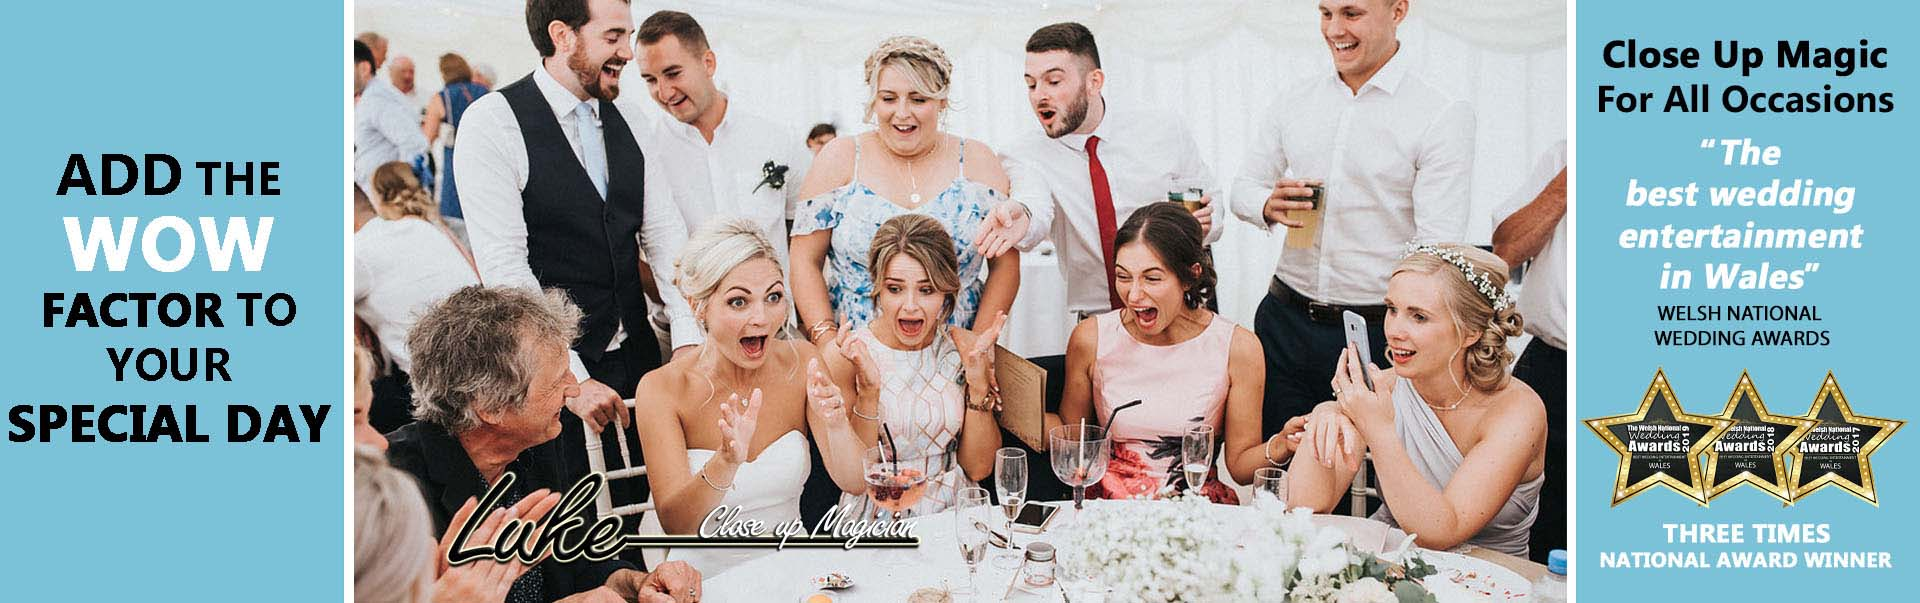 Bride and guests enjoying wedding entertainment